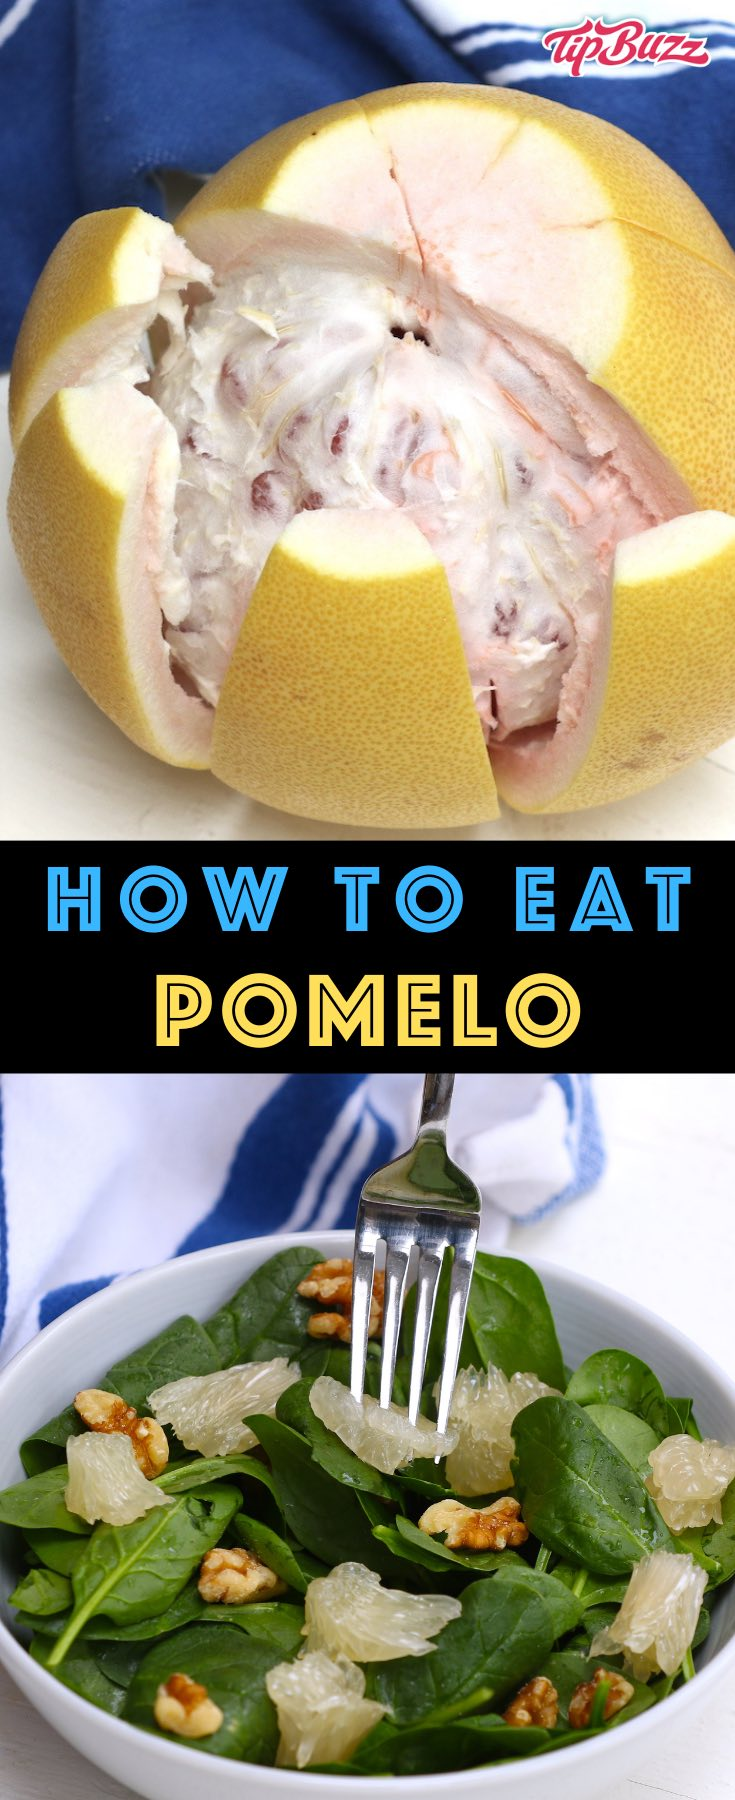 Pomelo is a large citrus fruit with a refreshing sweet and mild taste. Here we cover what is a pomelo, some of its health benefits and how it compares to grapefruit. We also explain different ways to eat pomelo.